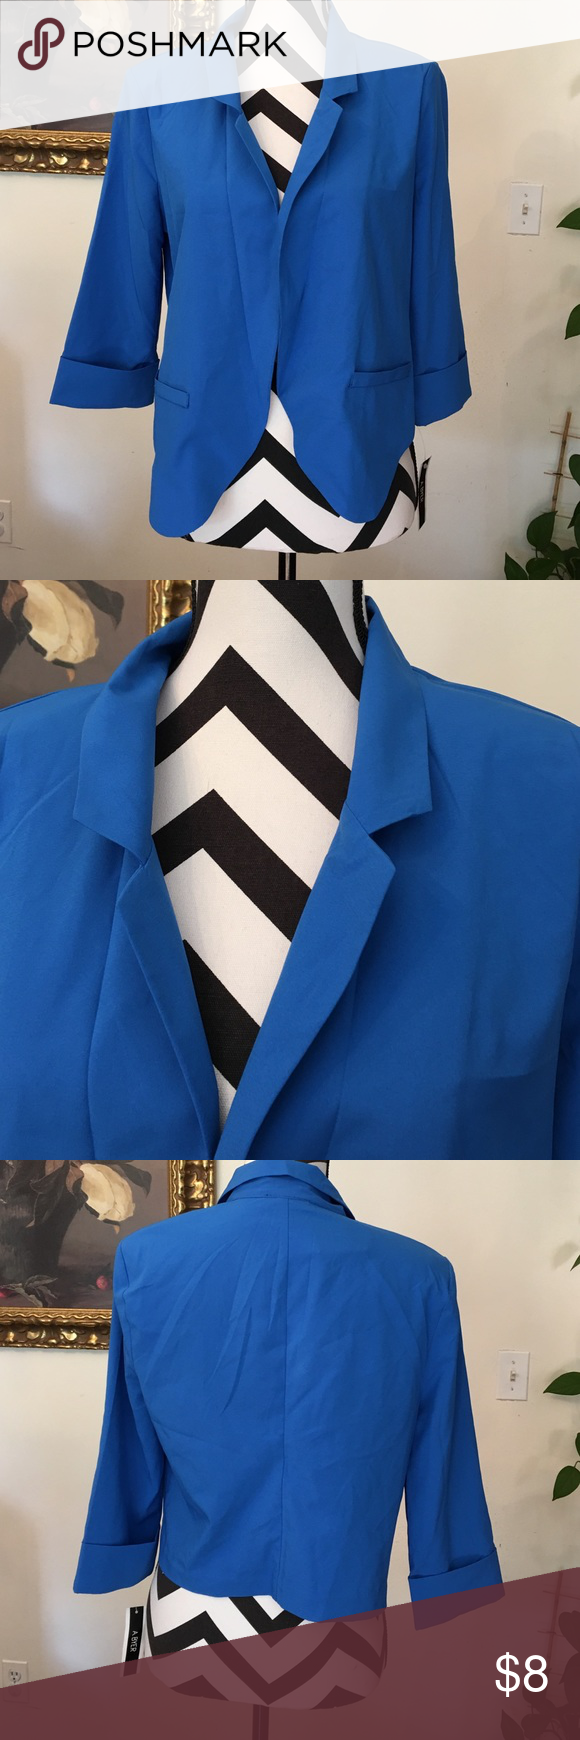 A. Byer Beautiful blue short jacket bran new with tags attach JR.SIZE A.Byer Jackets & Coats Blazers